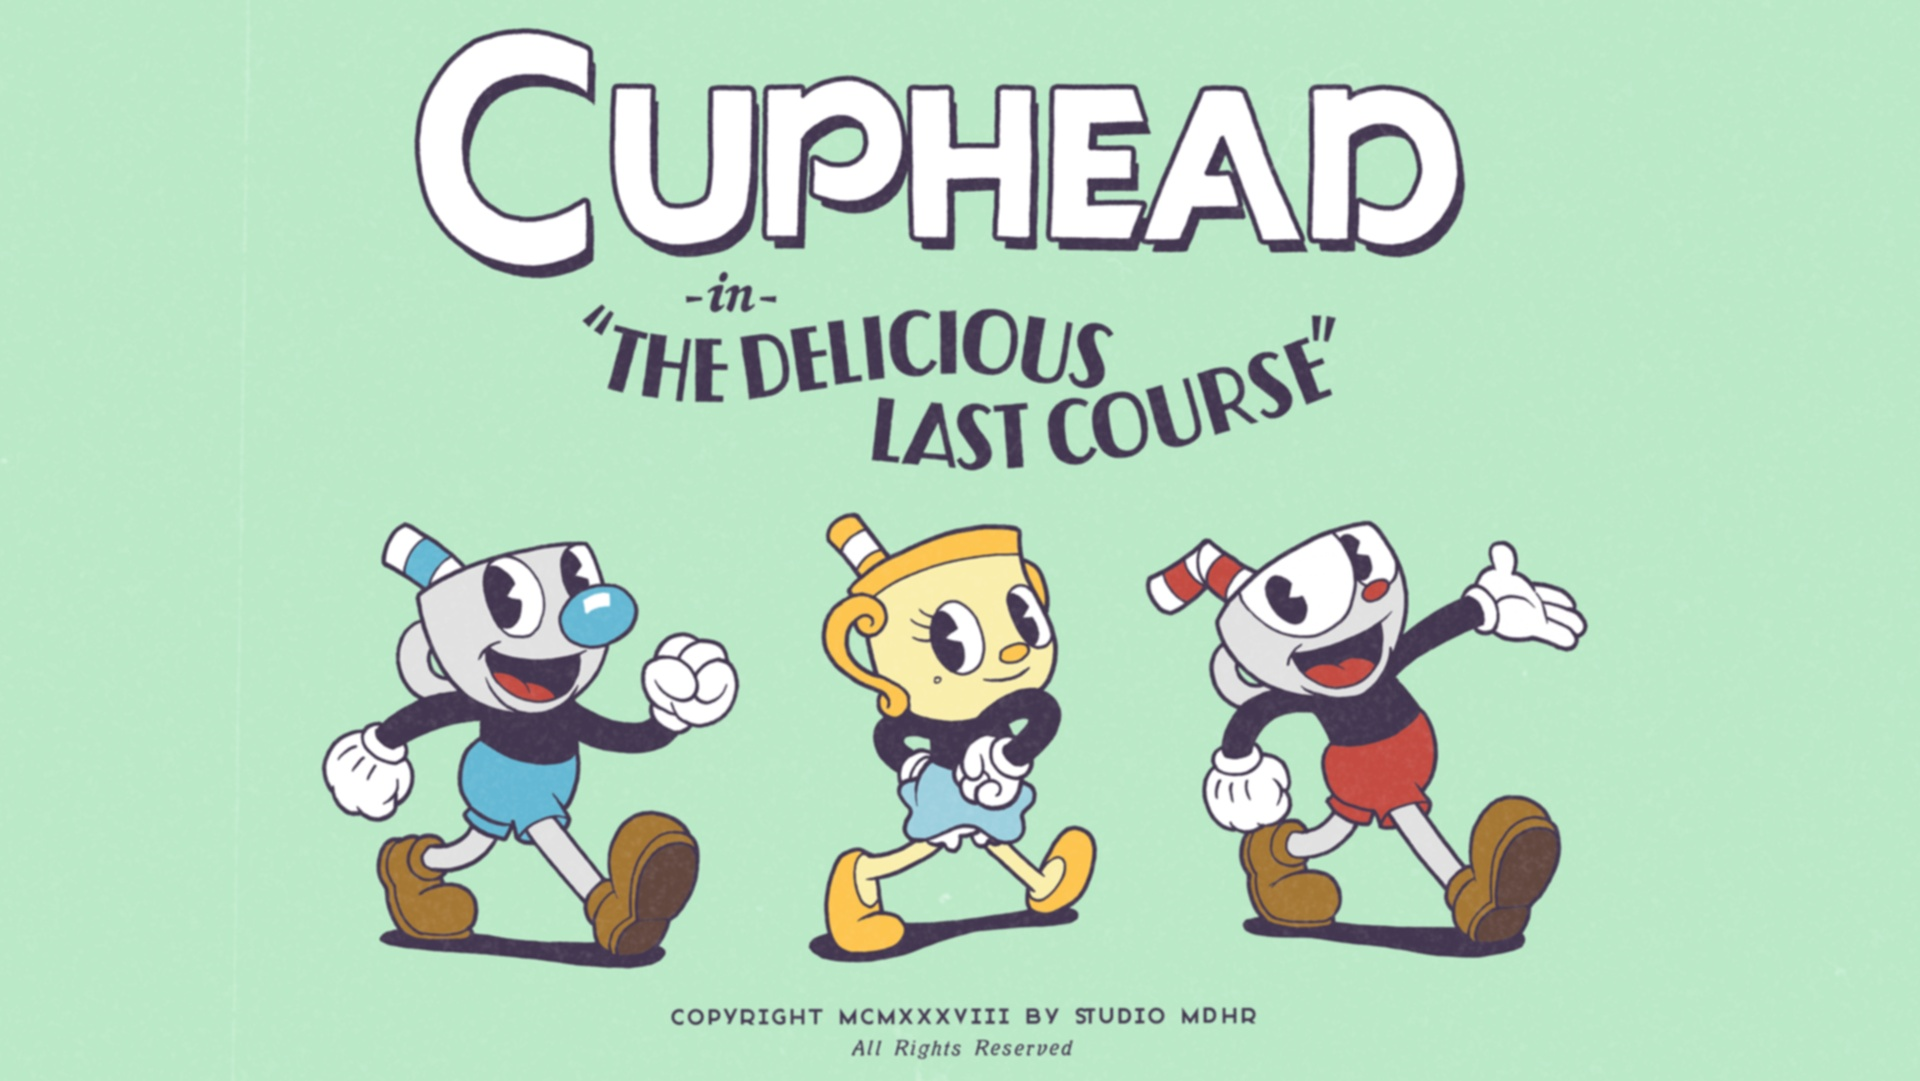 Video For Your First Bite of The Delicious Last Course with an Update from Studio MDHR on Cuphead DLC